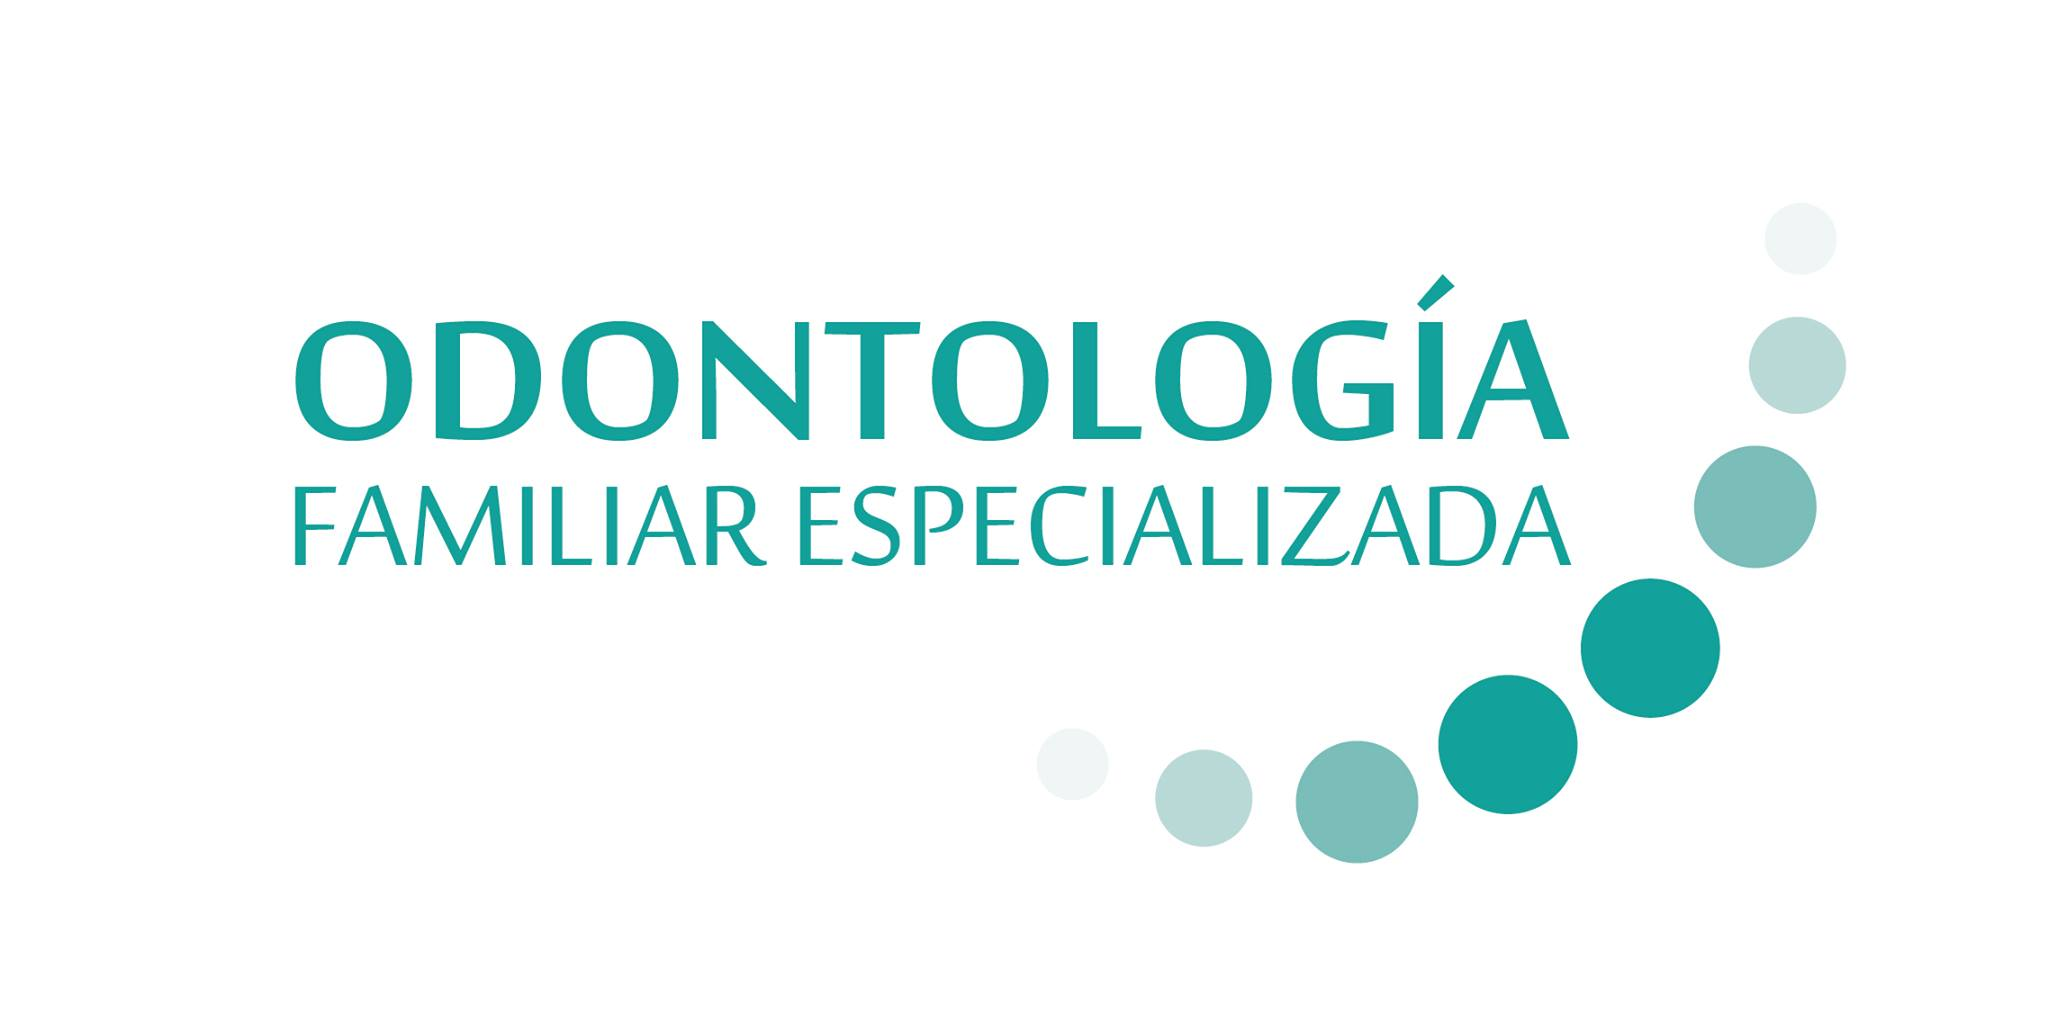 odontologia familiar especializada